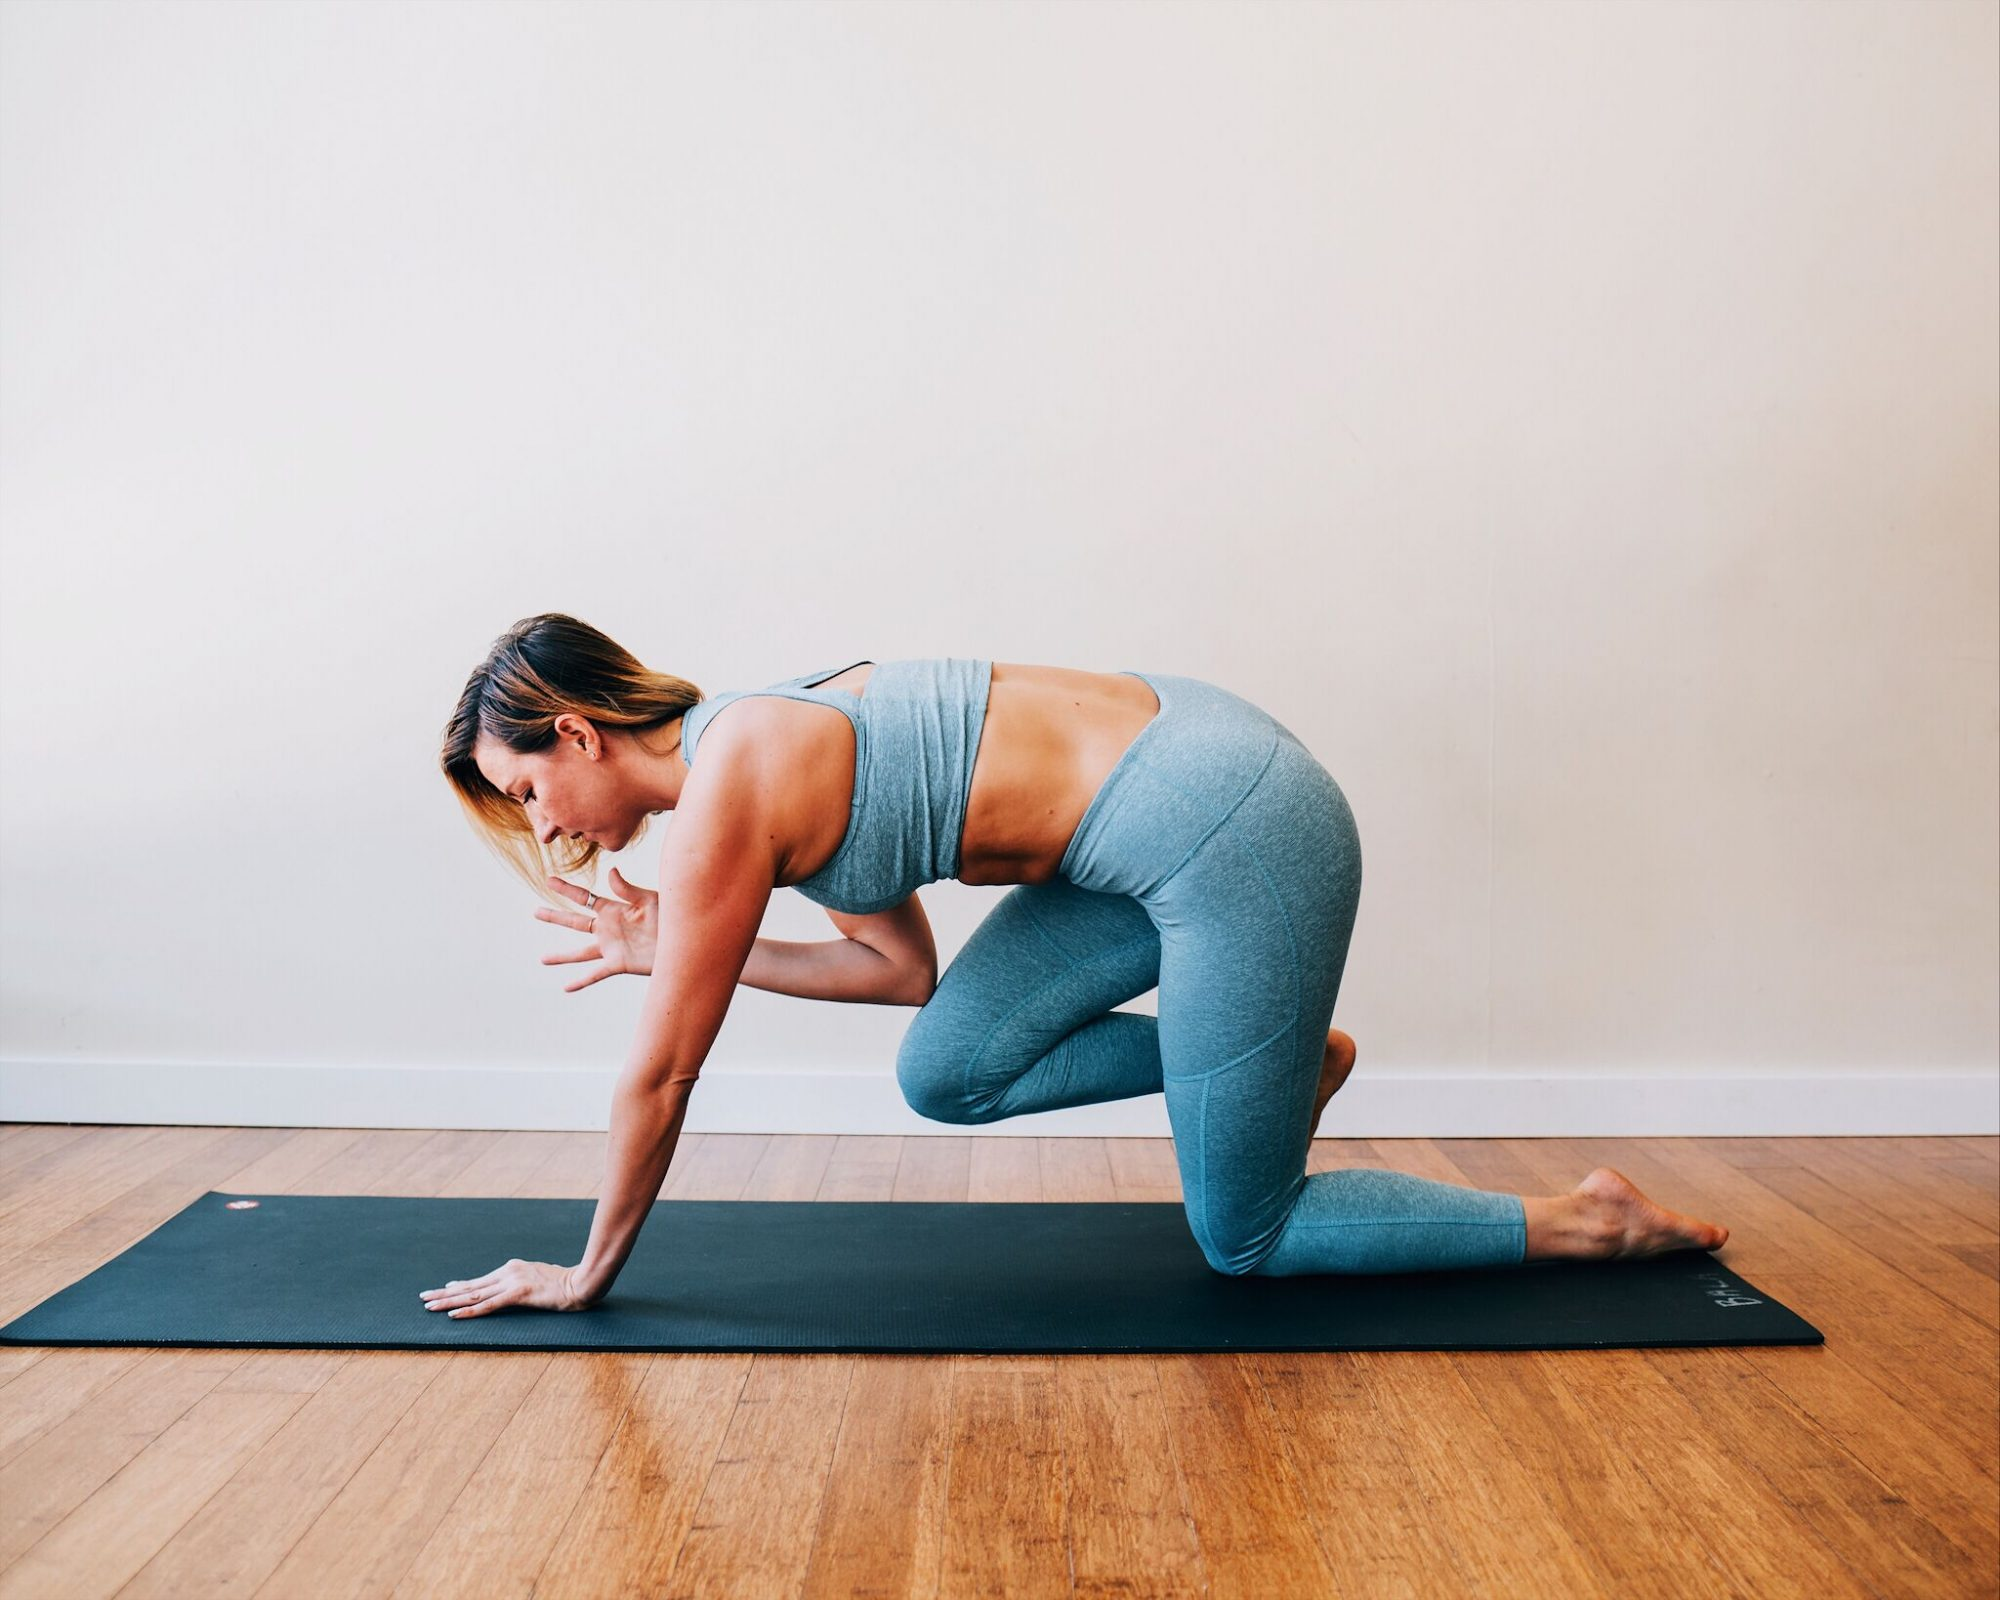 bala barre strengthening exercises you can do at home